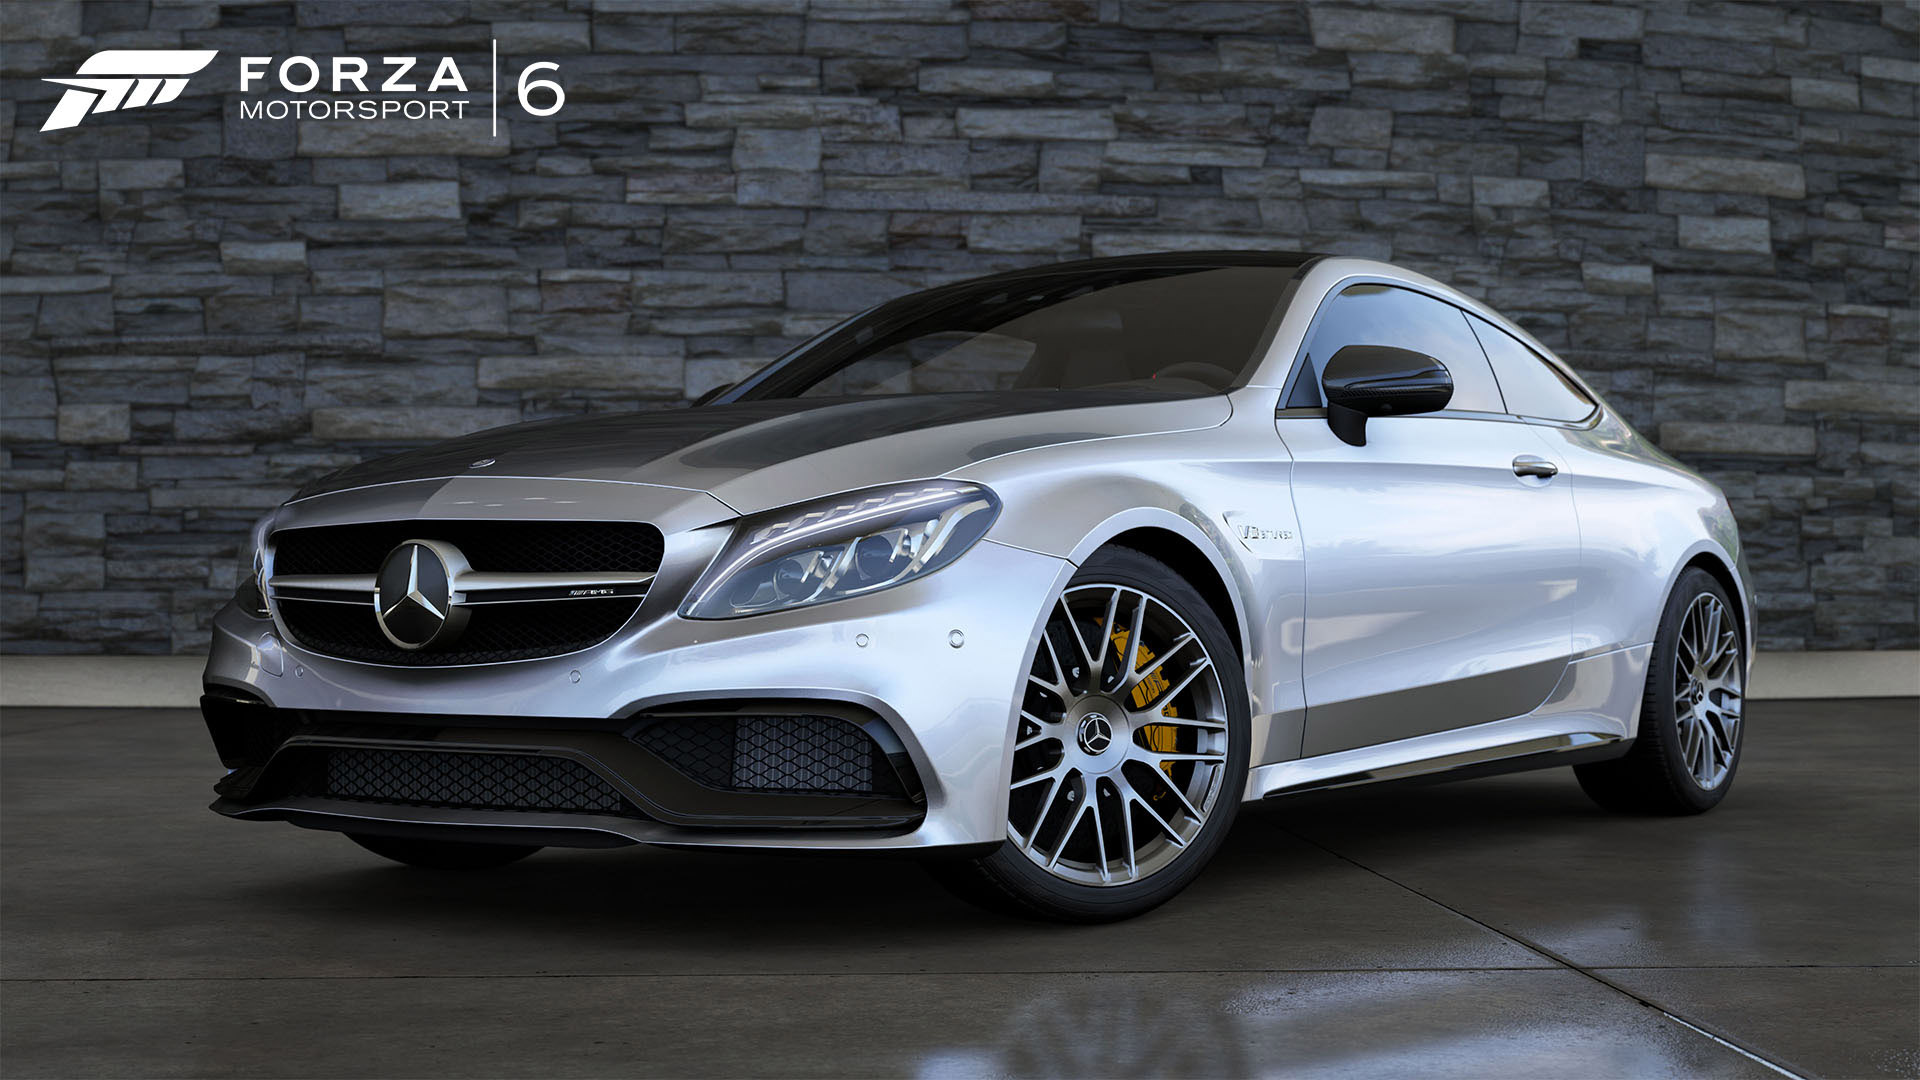 2015 Mercedes AMG C63 S Coupe For Forza Motorsport 6